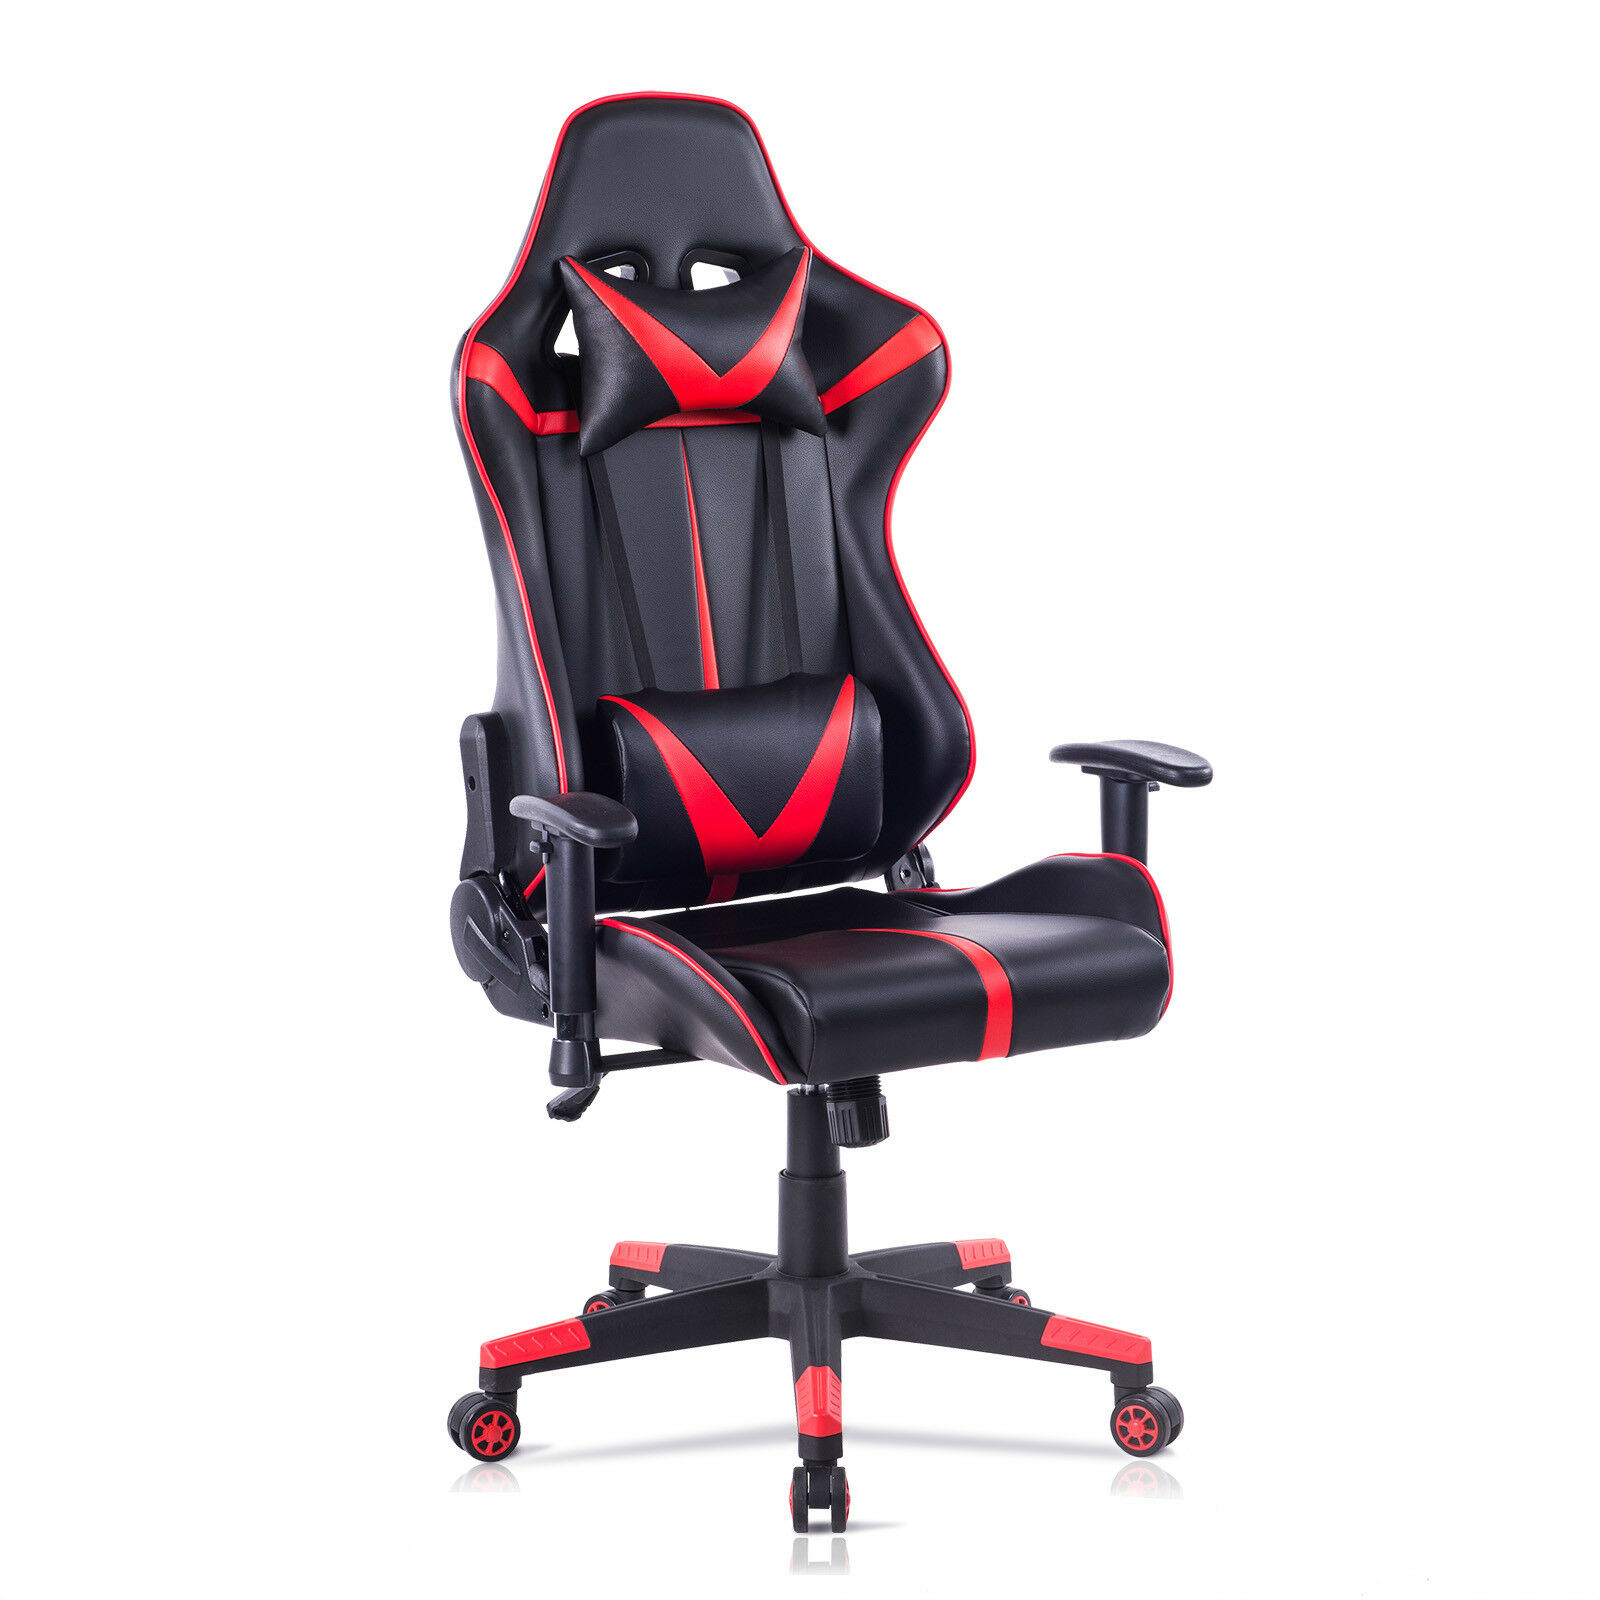 Racing Chaise En Similicuir De Gaming Bureau Rouge Noir BS13rt 1 Sur 9Seulement 0 Disponible Voir Plus